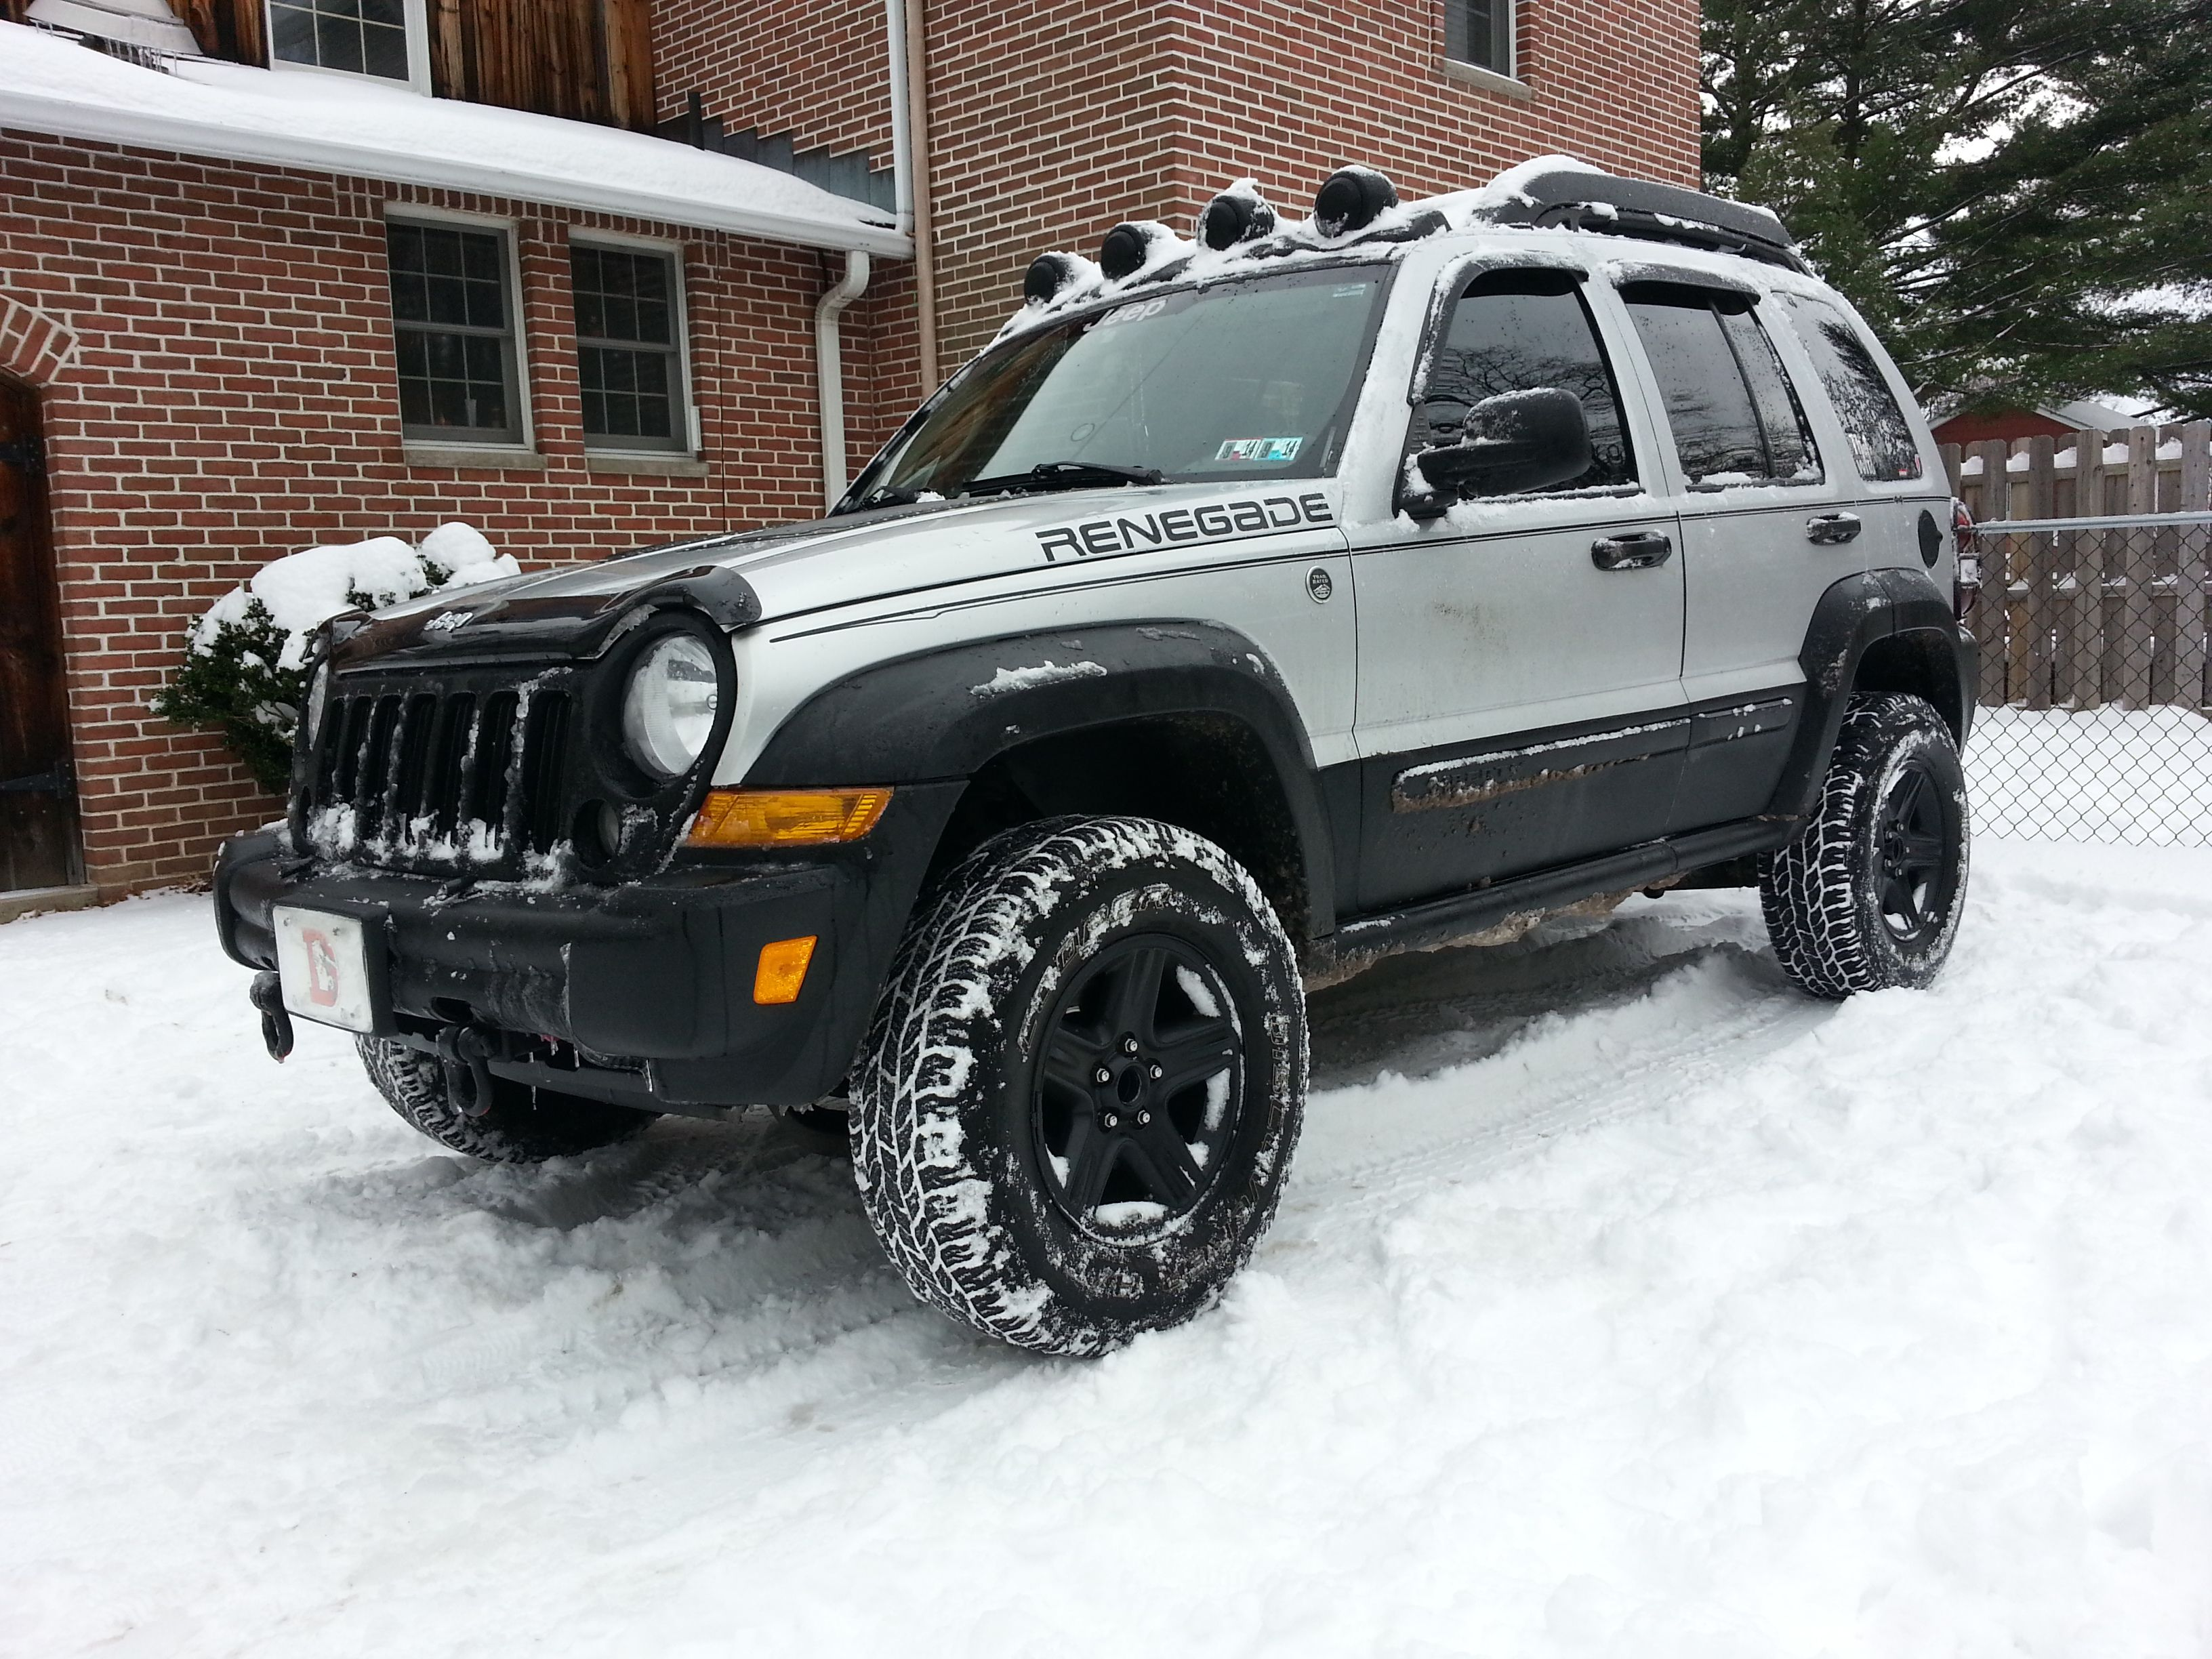 Another Gridiron 4x4 2006 Jeep Liberty Post Photo 18970431